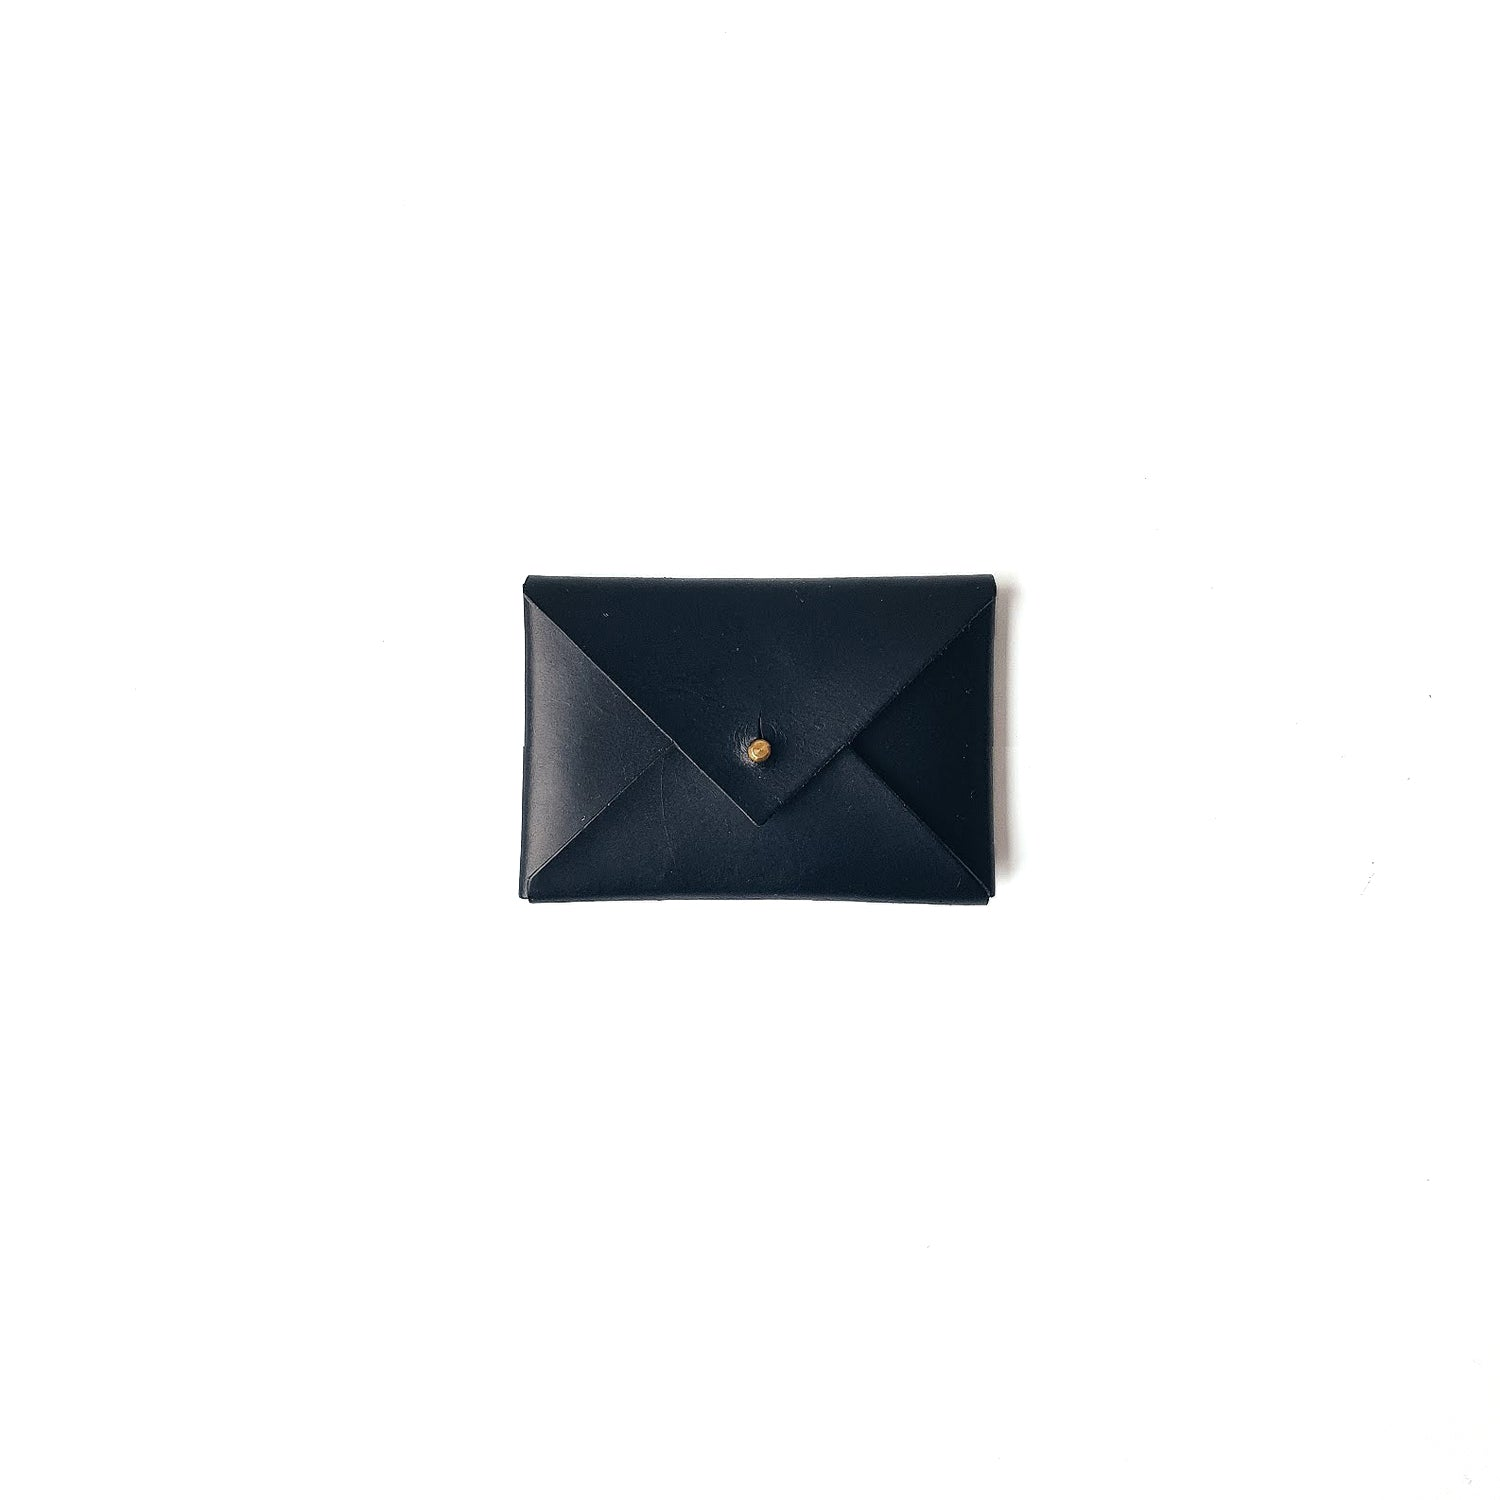 Mini Envelope in Black